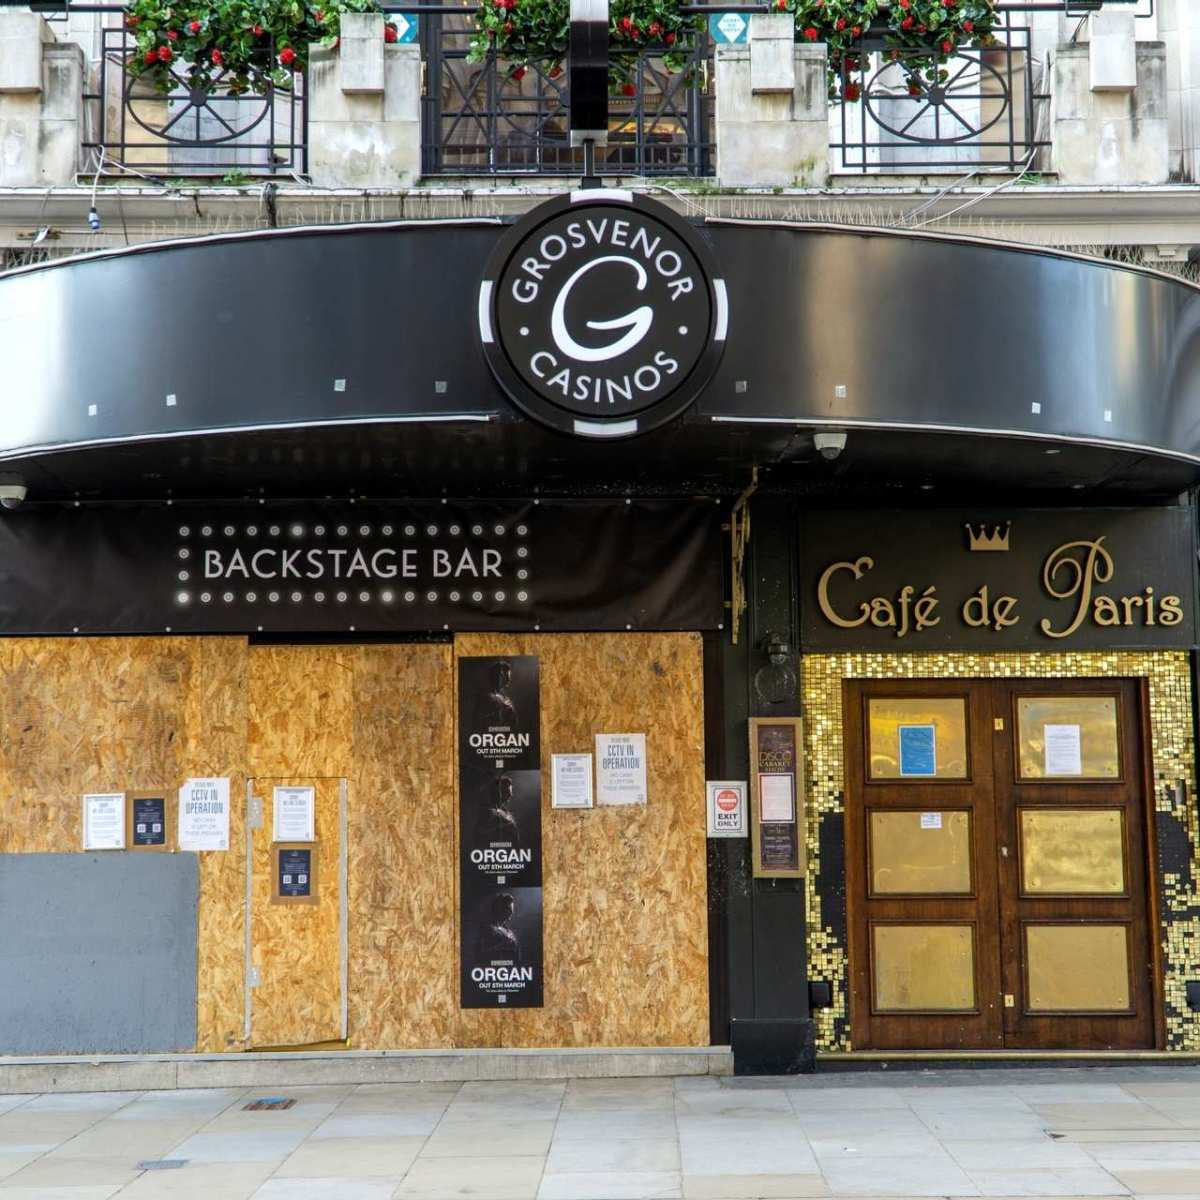 Café de Paris, one of London's oldest nightclubs established in the 1920s, closed its doors due to the COVID-19 pandemic.